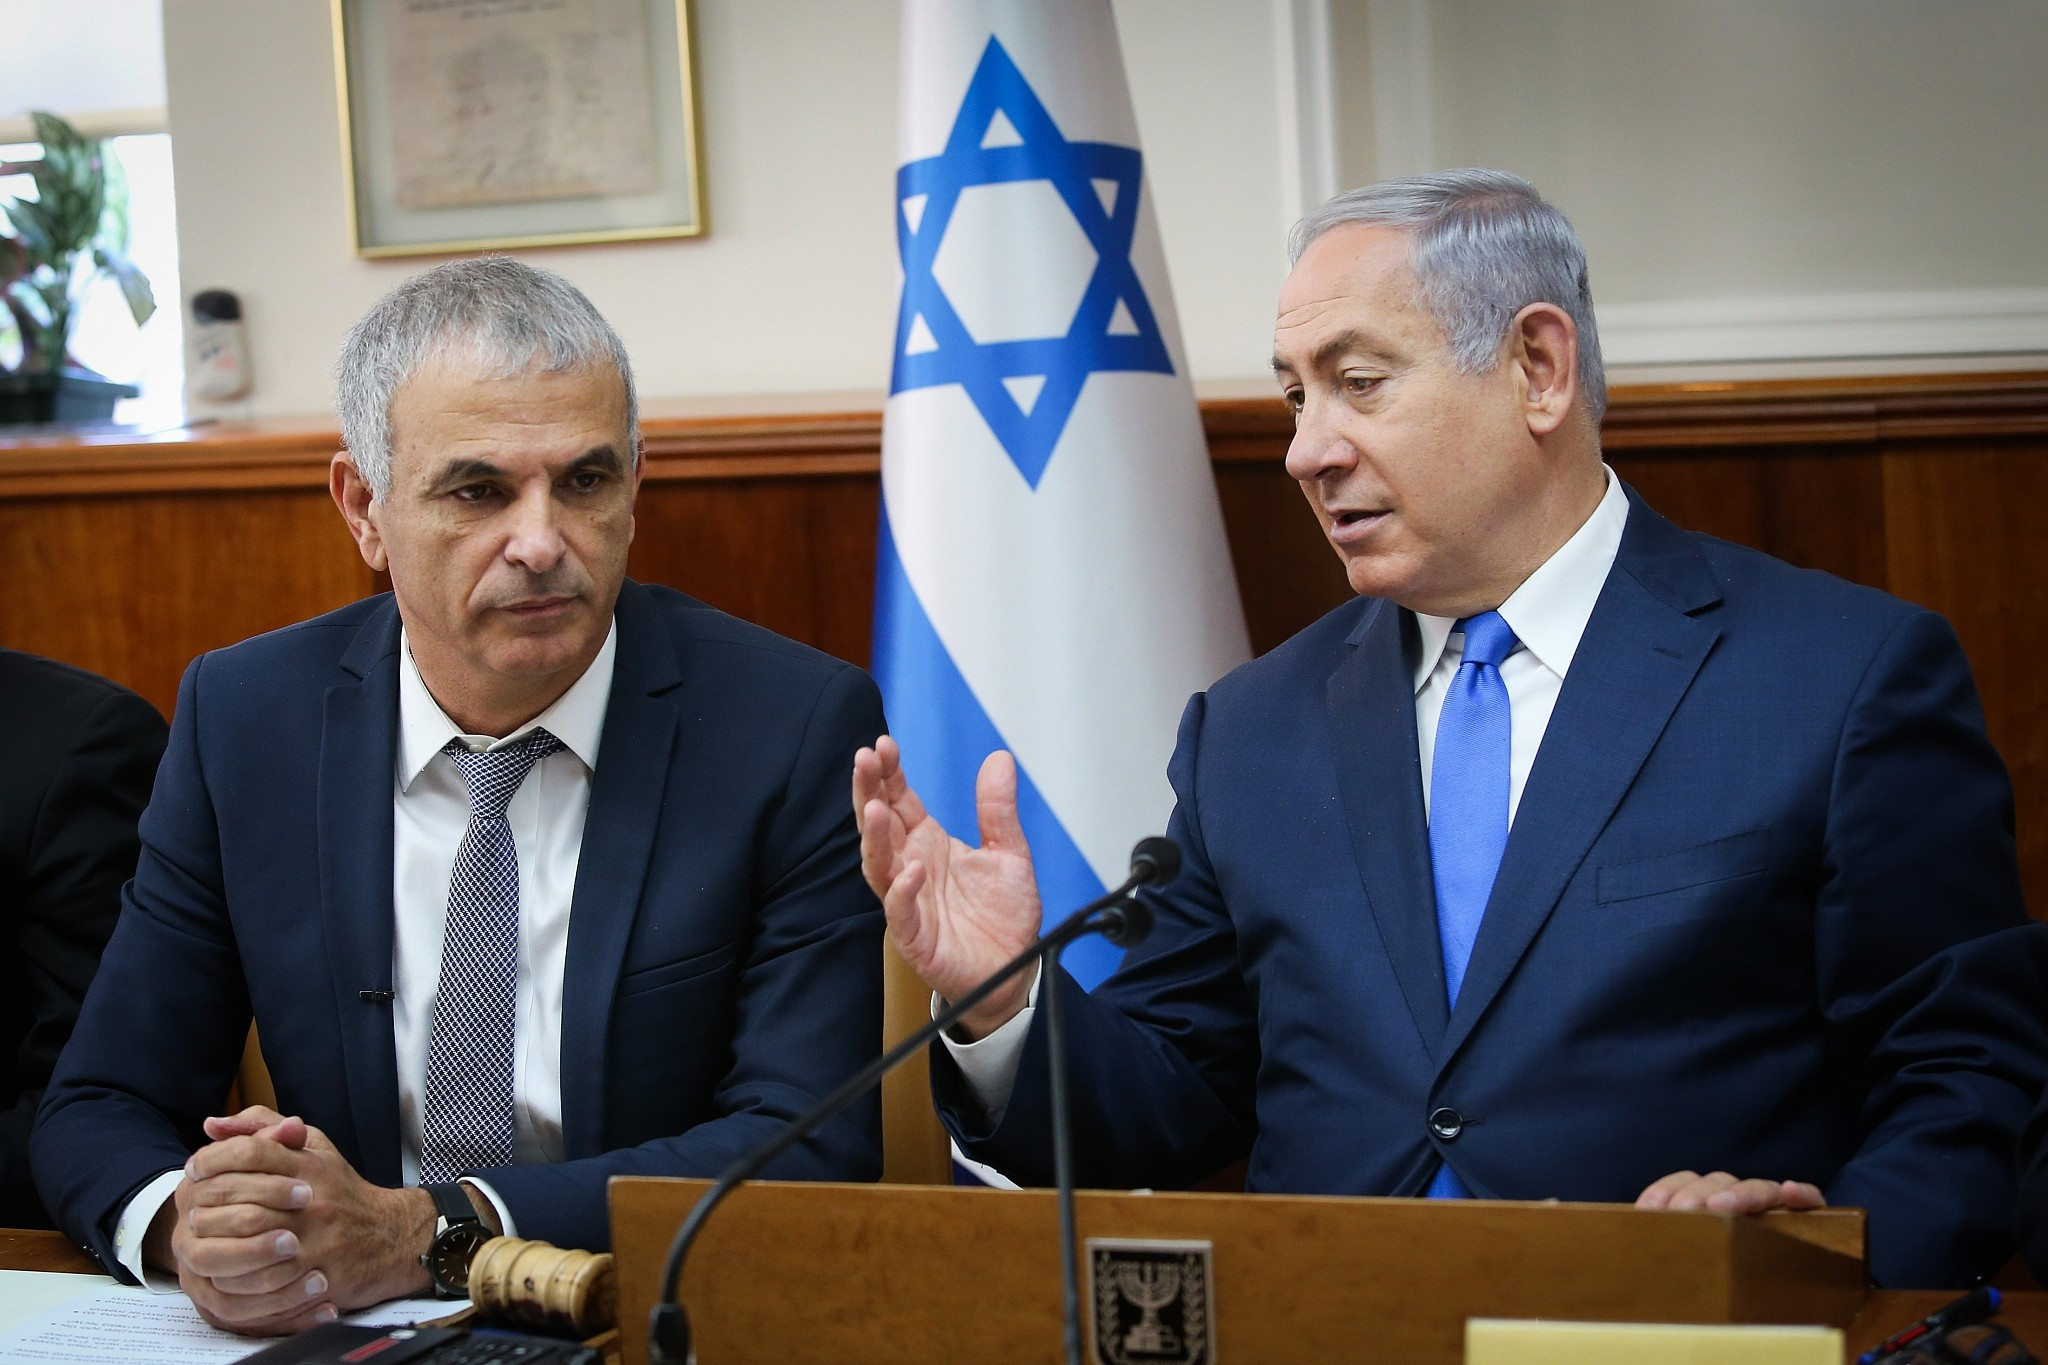 Prime Minister Benjamin Netanyahu and Finance Minister Moshe Kahlon at a special cabinet meeting at the Prime Minister's Office in Jerusalem